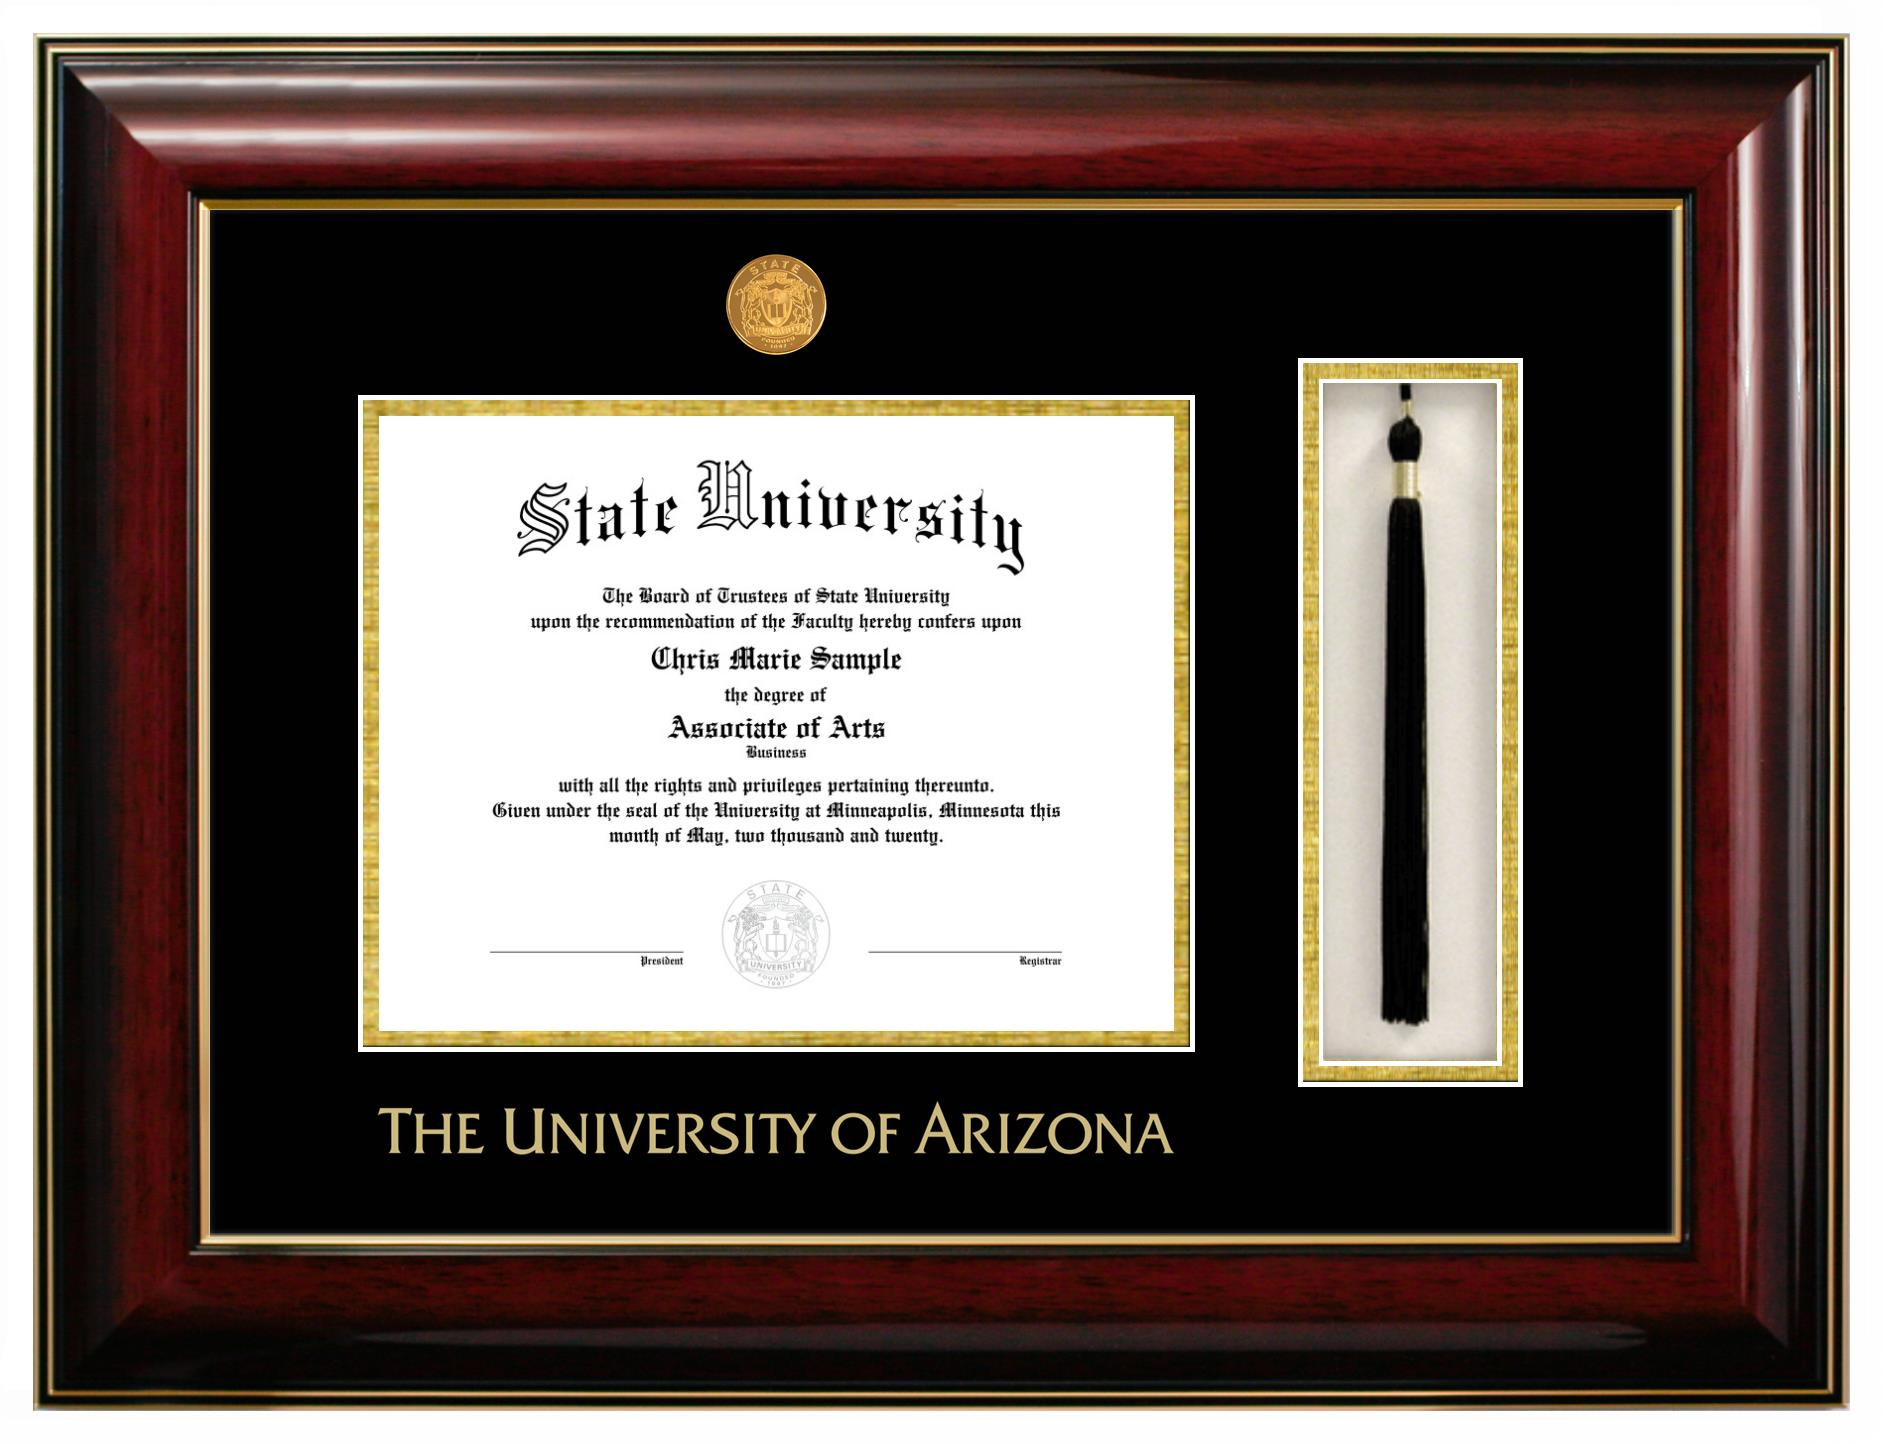 Cover Image For Diploma Frame: University of Arizona Classic Tassel